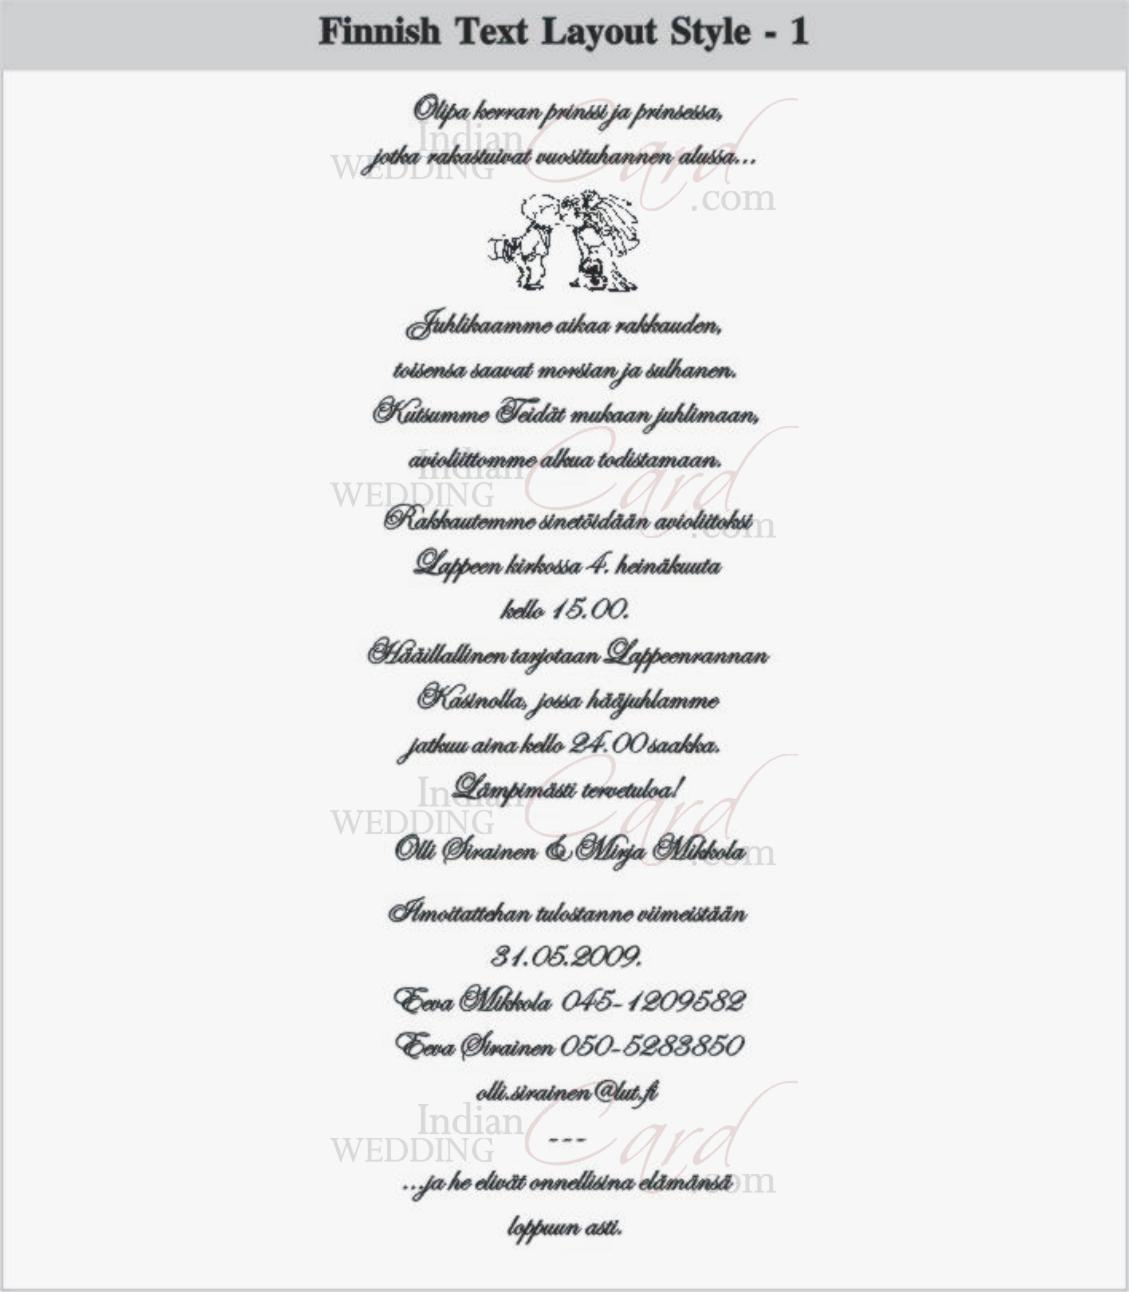 Fantastic Wedding Invitation Speech Image Collection - Invitation ...